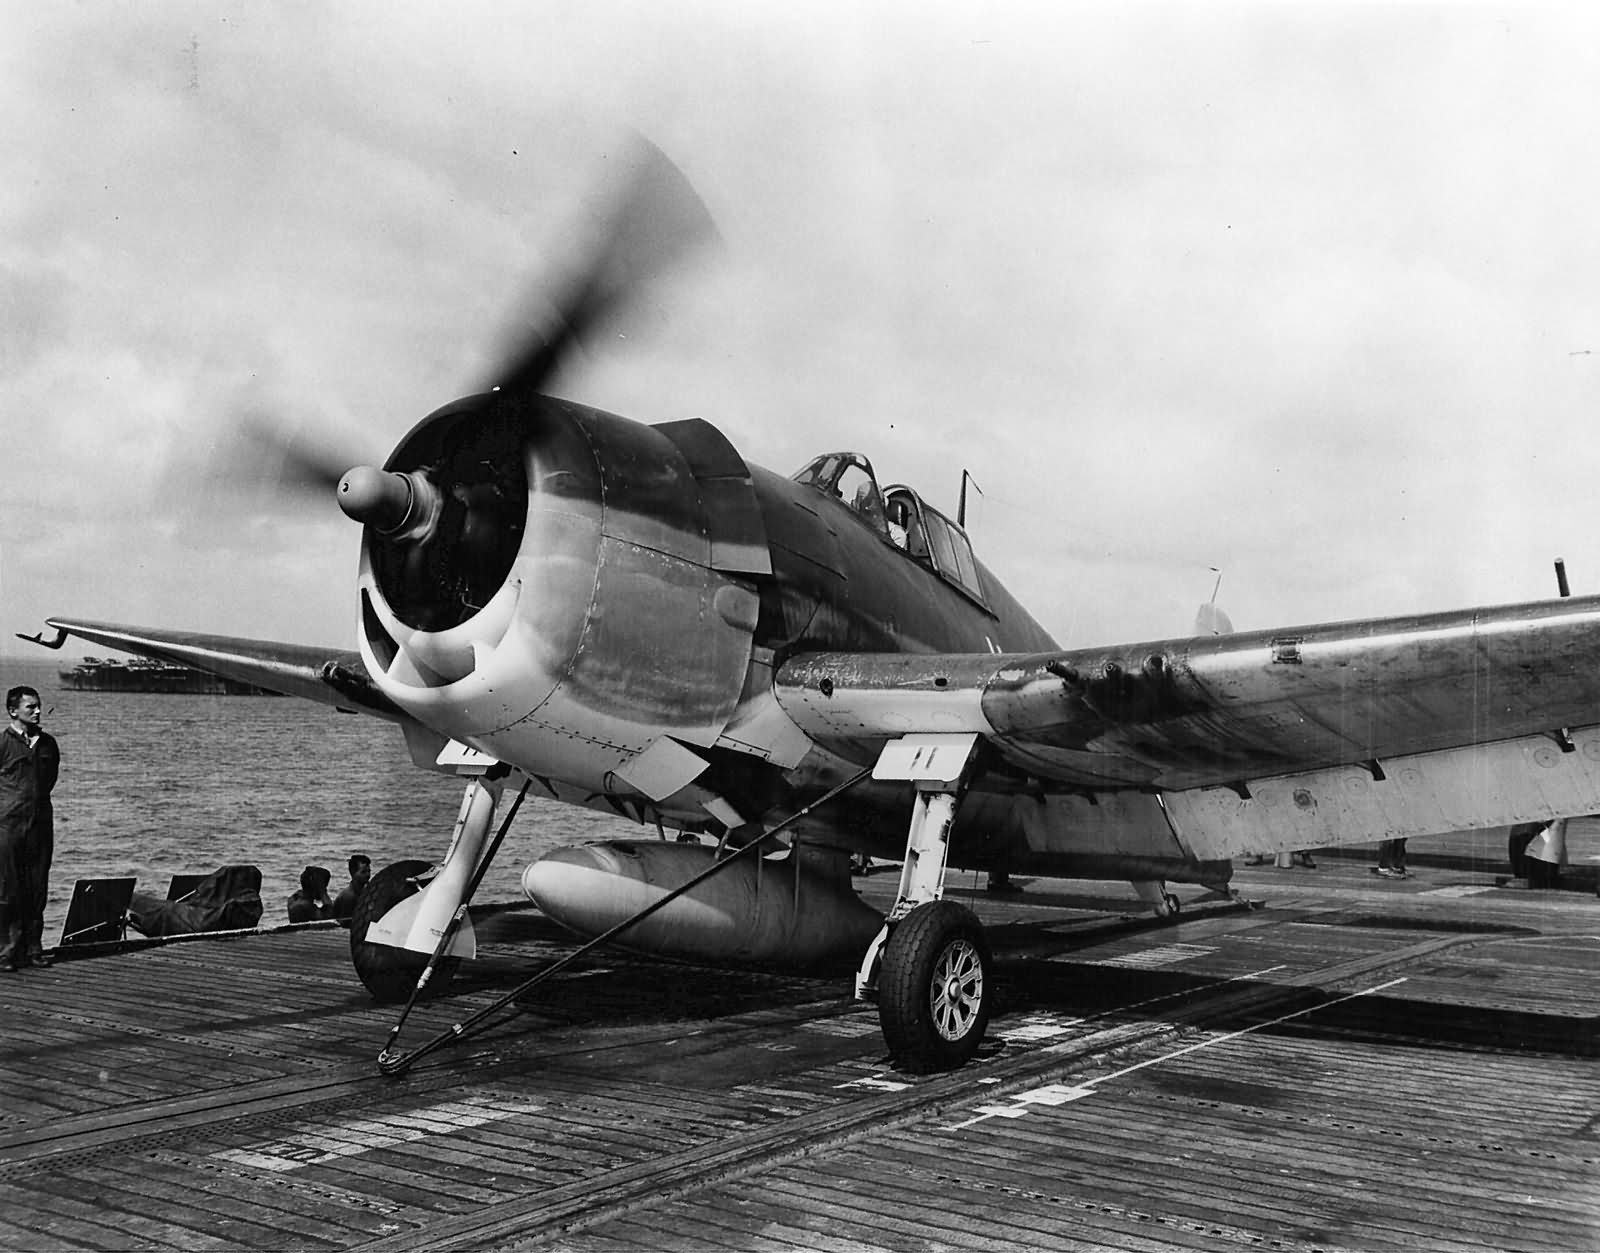 f6f 3 hellcat 11 of vf 2 on the catapult on board the carrier uss hornet cv 12 may 6 1944. Black Bedroom Furniture Sets. Home Design Ideas